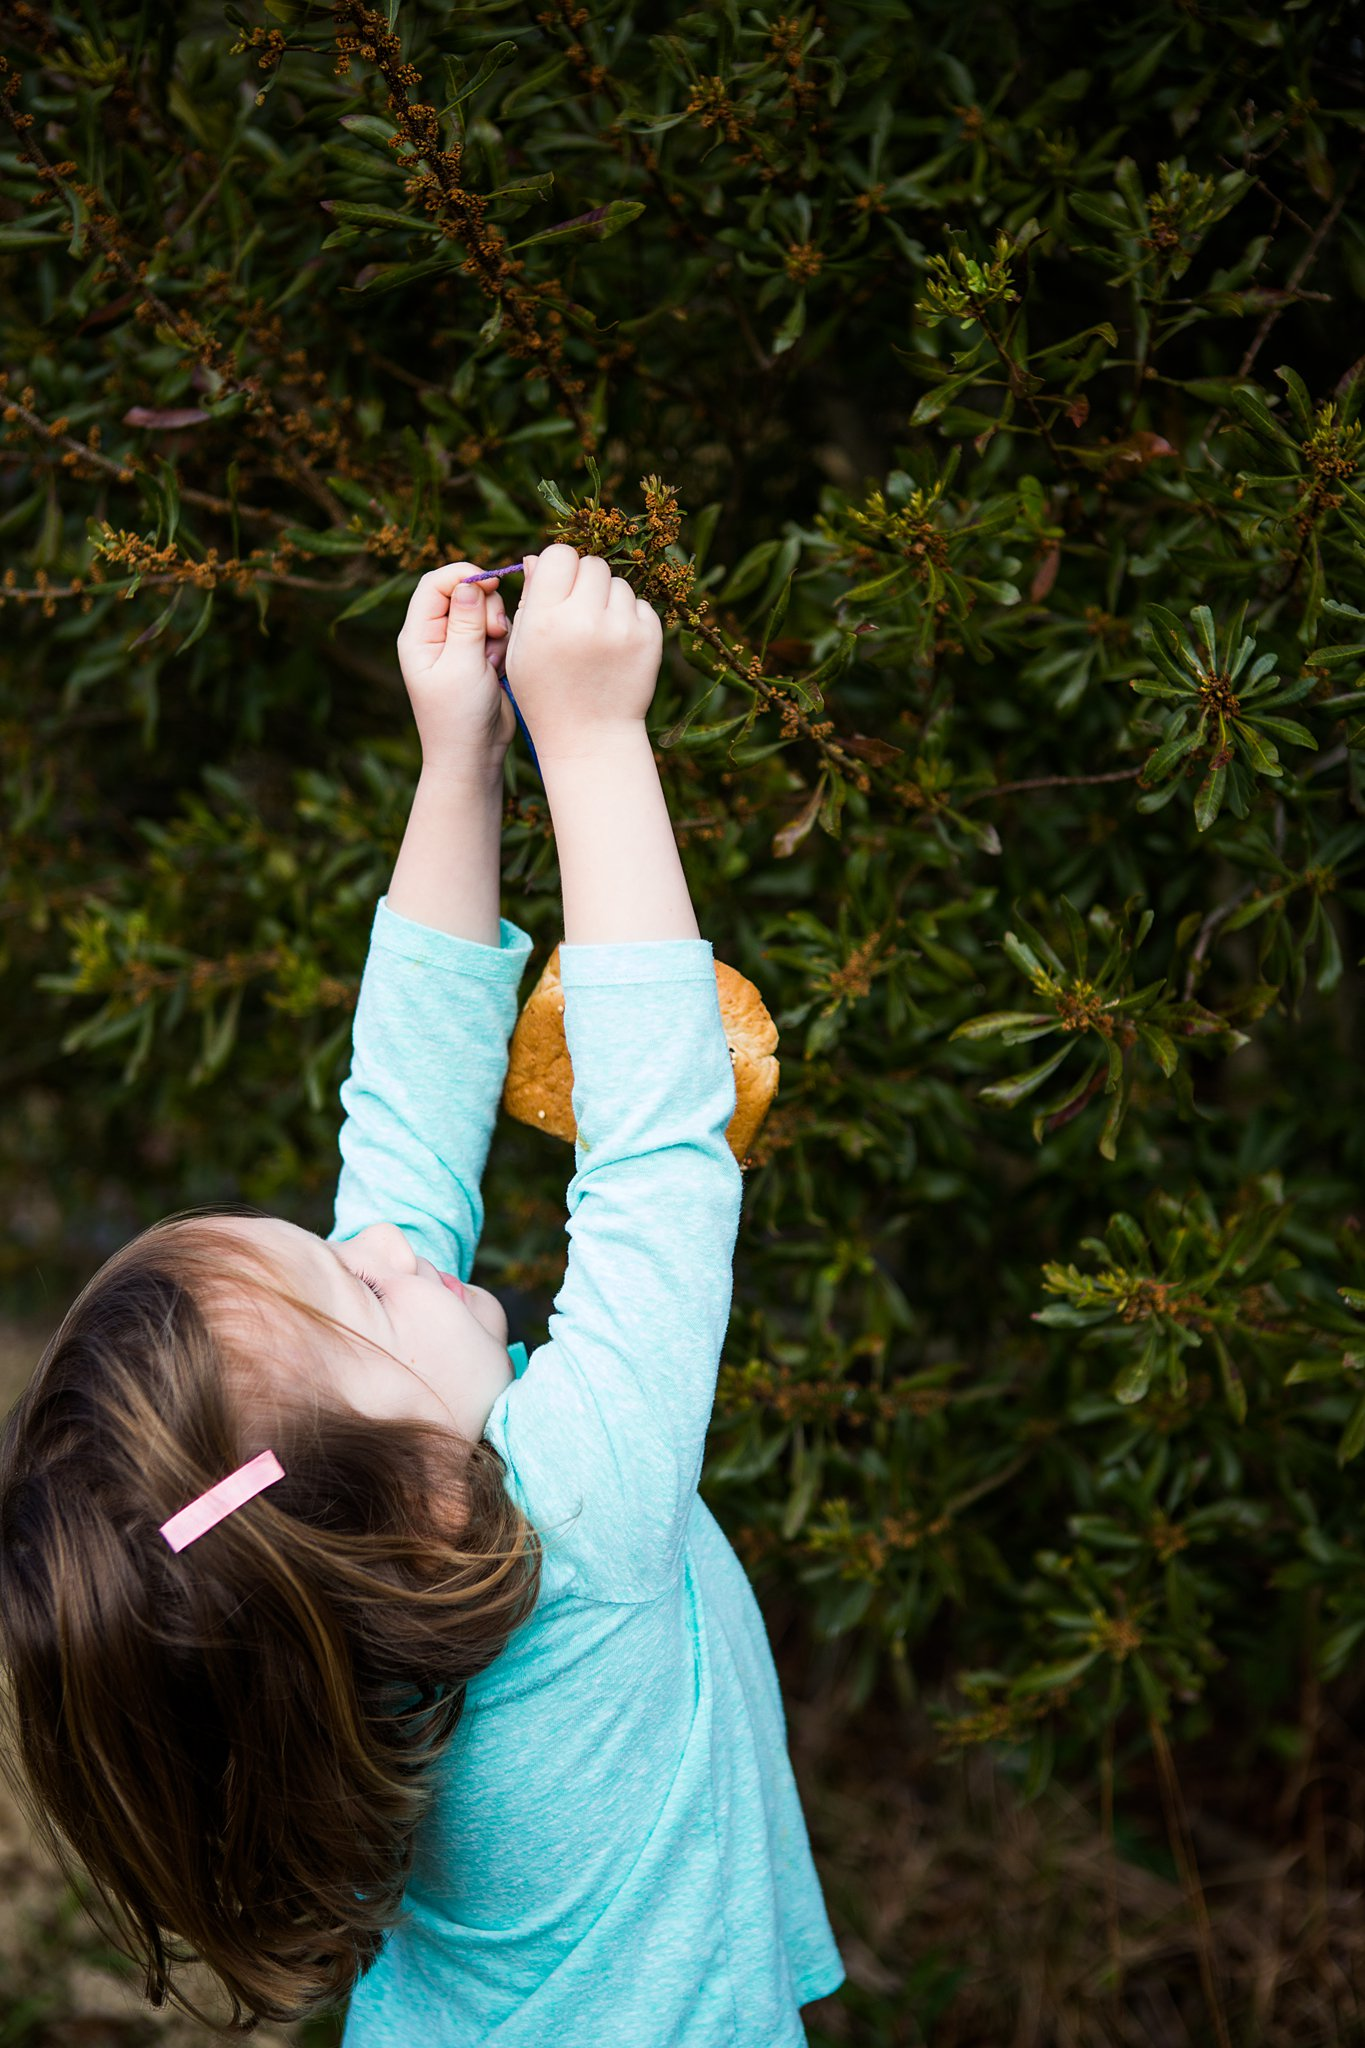 preschooler hanging homemade bird feeder on tree